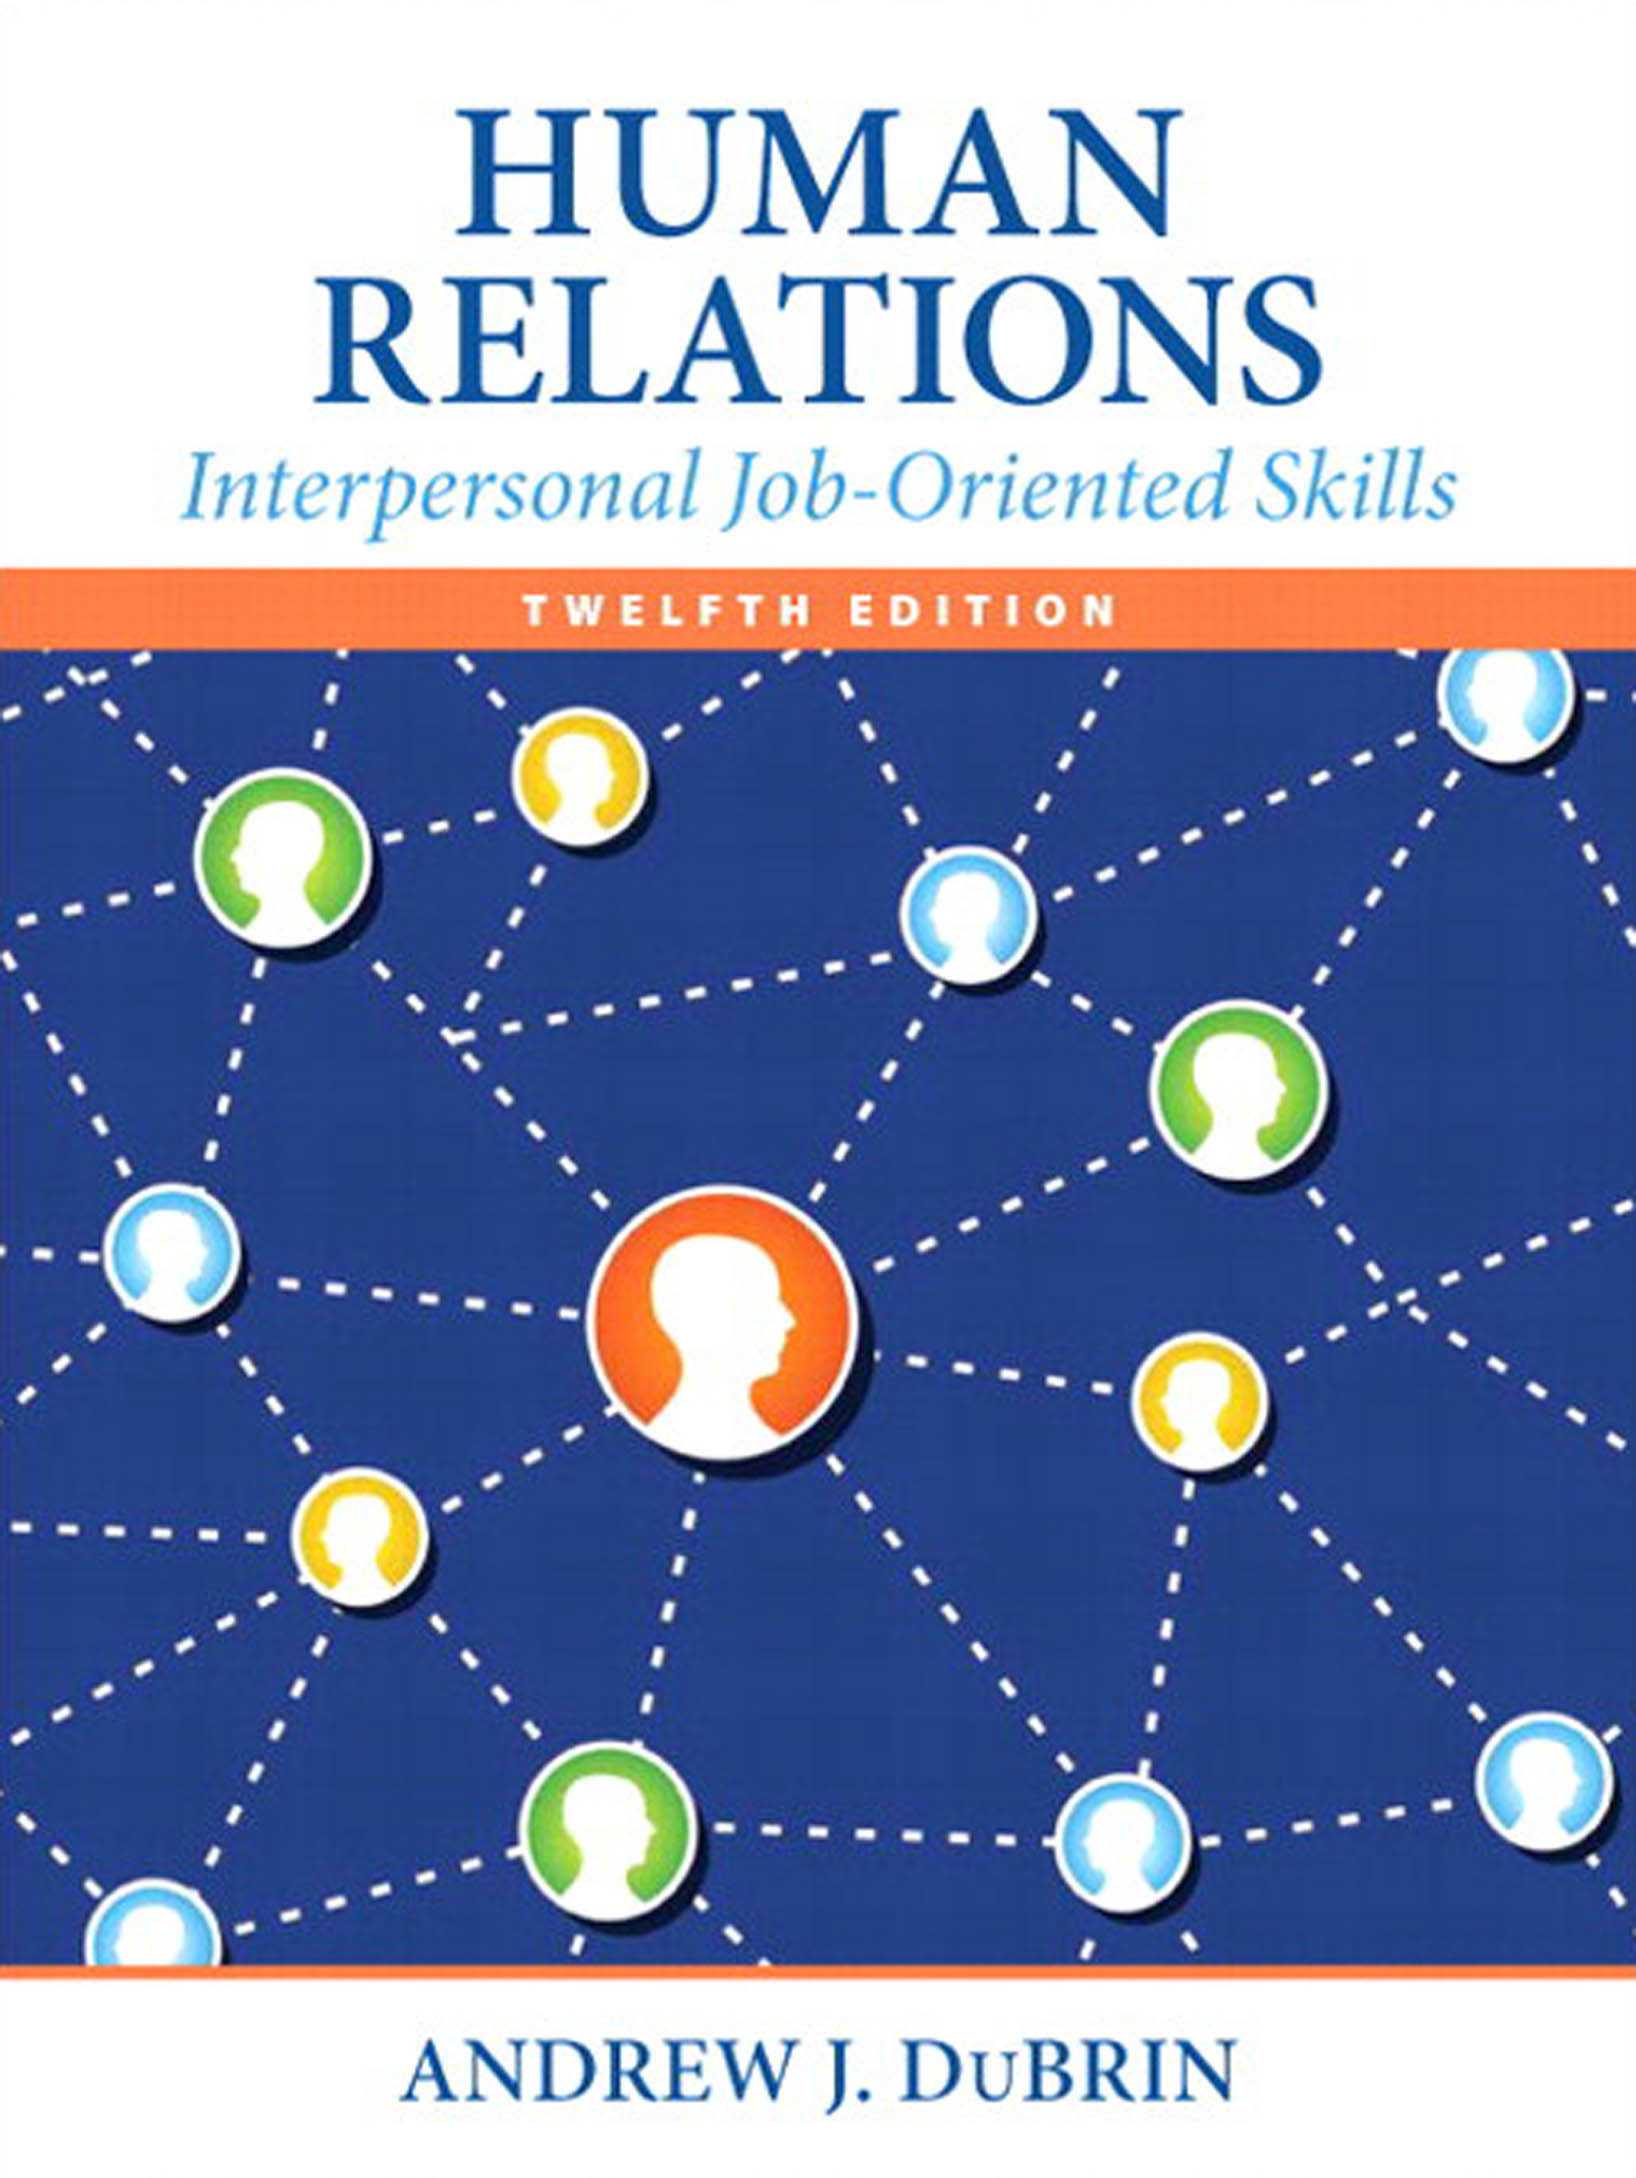 Human Relations: Interpersonal Job-Oriented Skills, 12/e